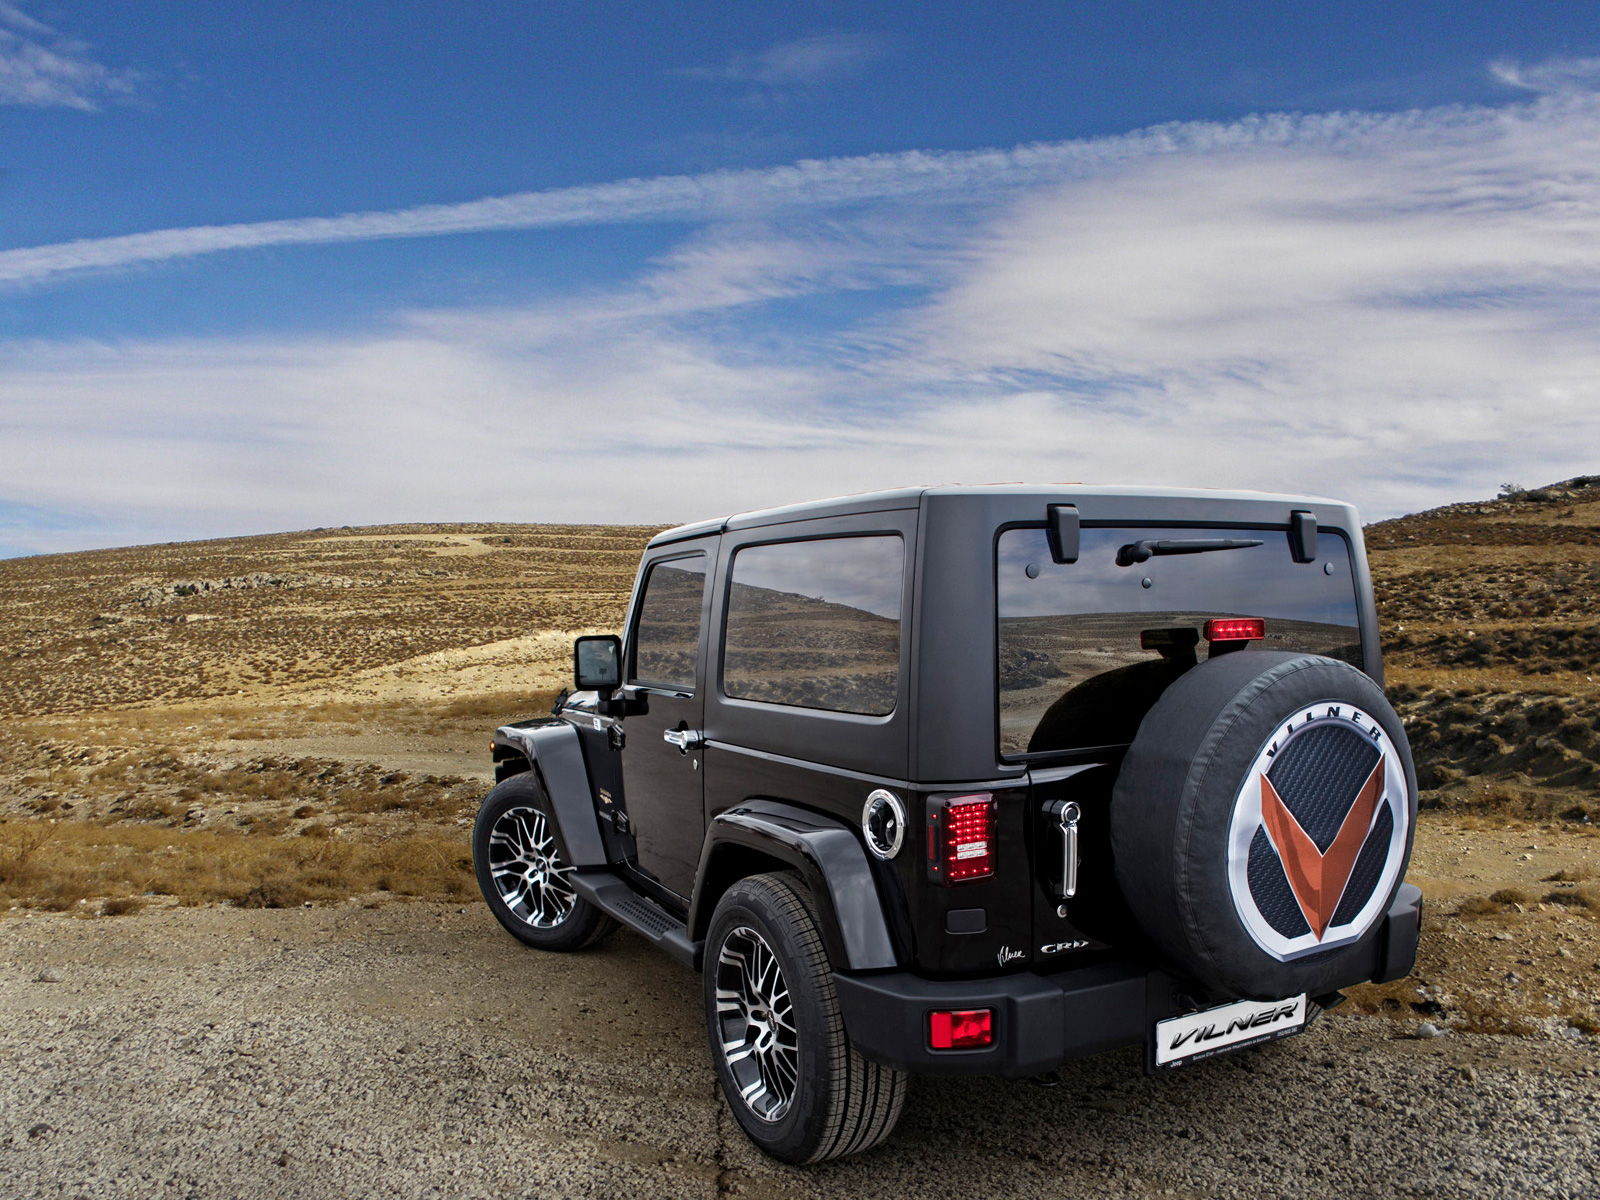 3dtuning of jeep wrangler rubicon convertible 2012. Black Bedroom Furniture Sets. Home Design Ideas